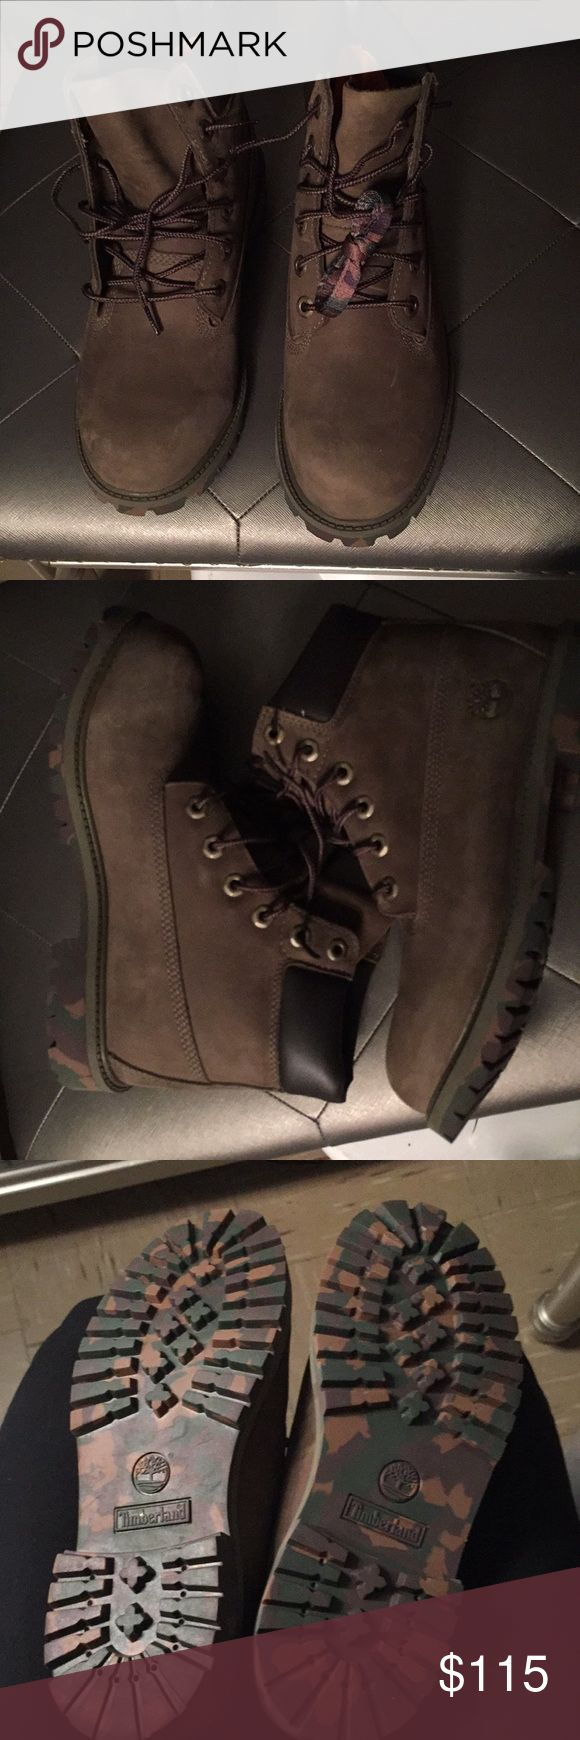 Timberland Olive Olive Timberland With Army Fatigue Bottom Kids Size 6Y Never Worn With Army Fatigue Shoelaces Timberland Shoes Boots